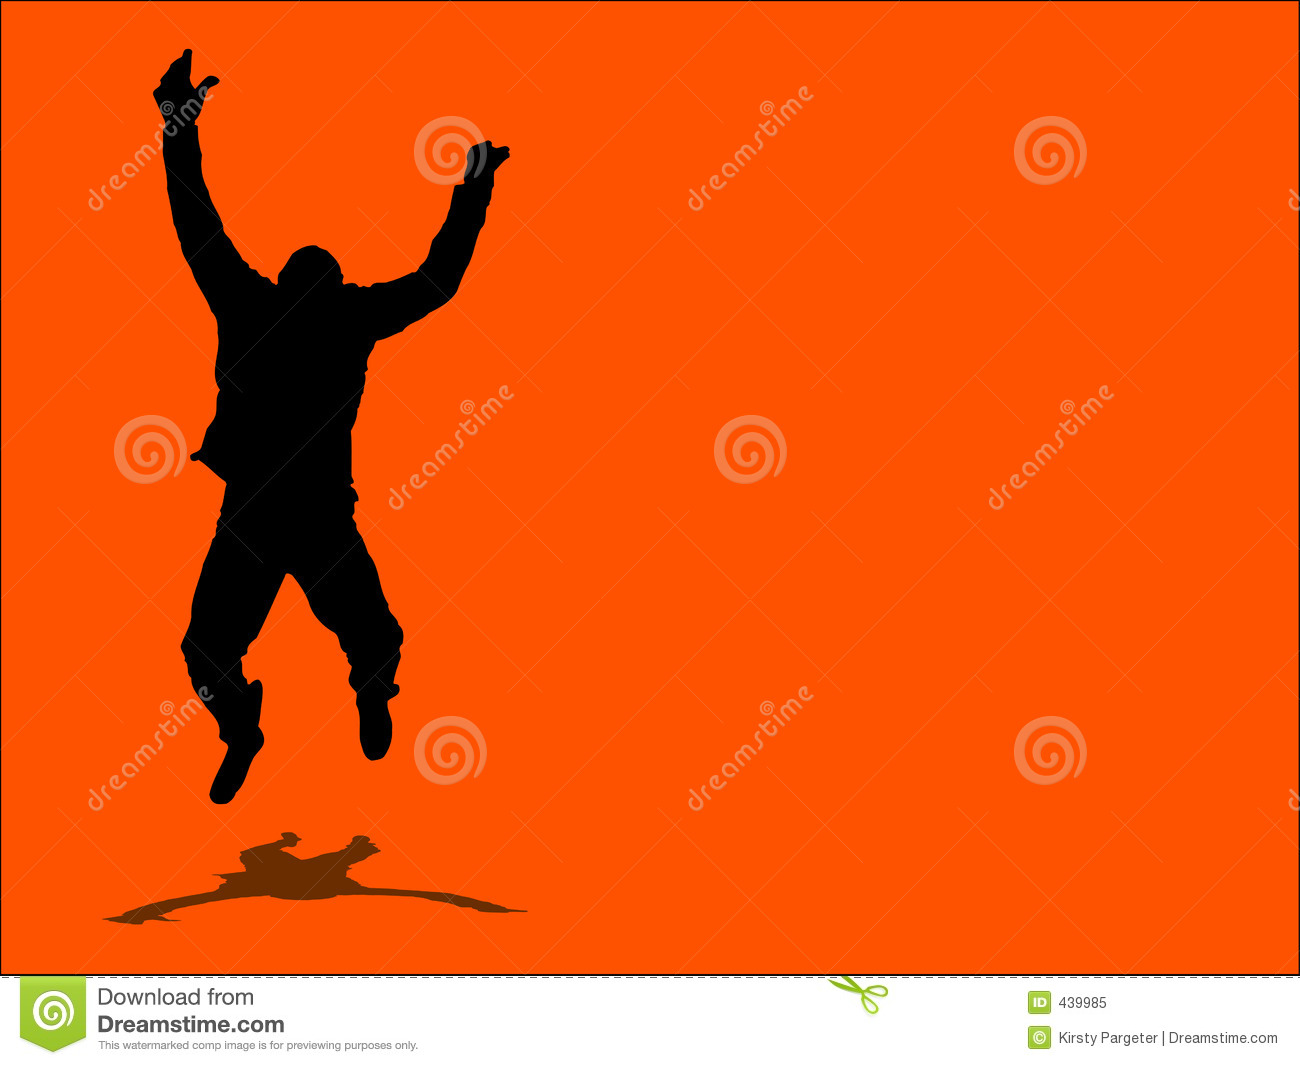 jump for joy royalty free stock photo image 439985